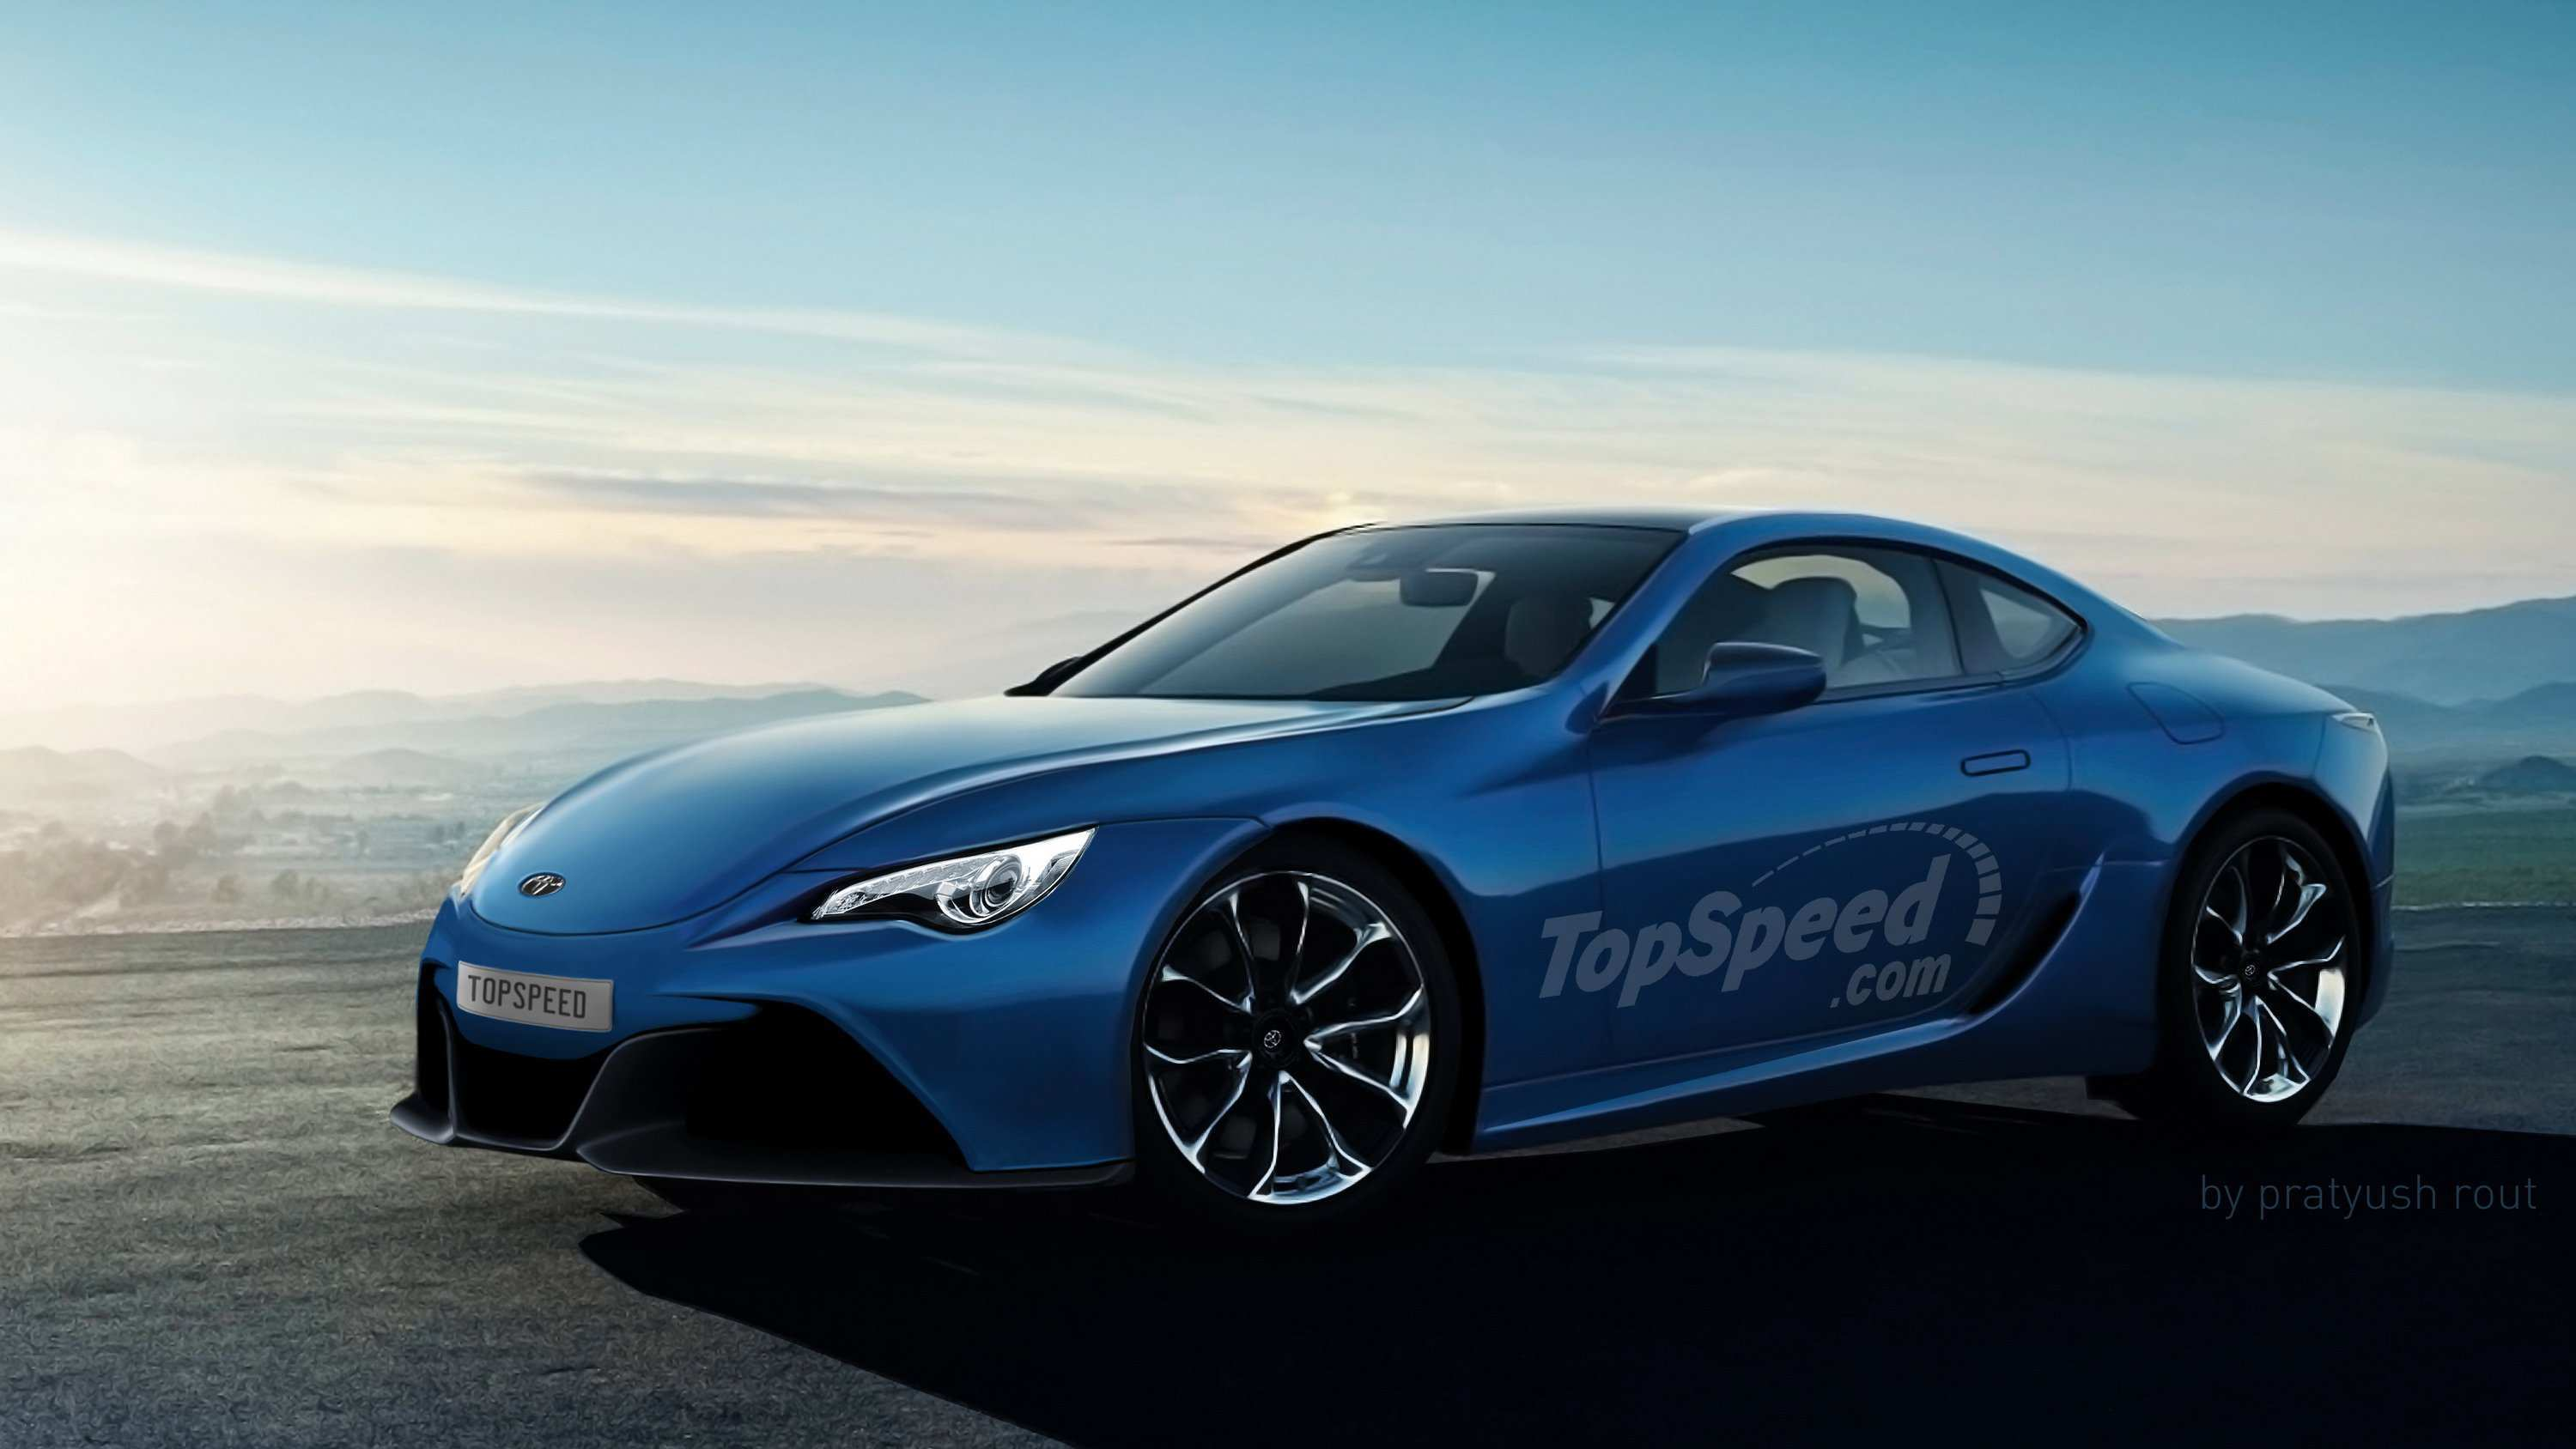 85 Best Review Toyota Gt86 2020 Performance with Toyota Gt86 2020